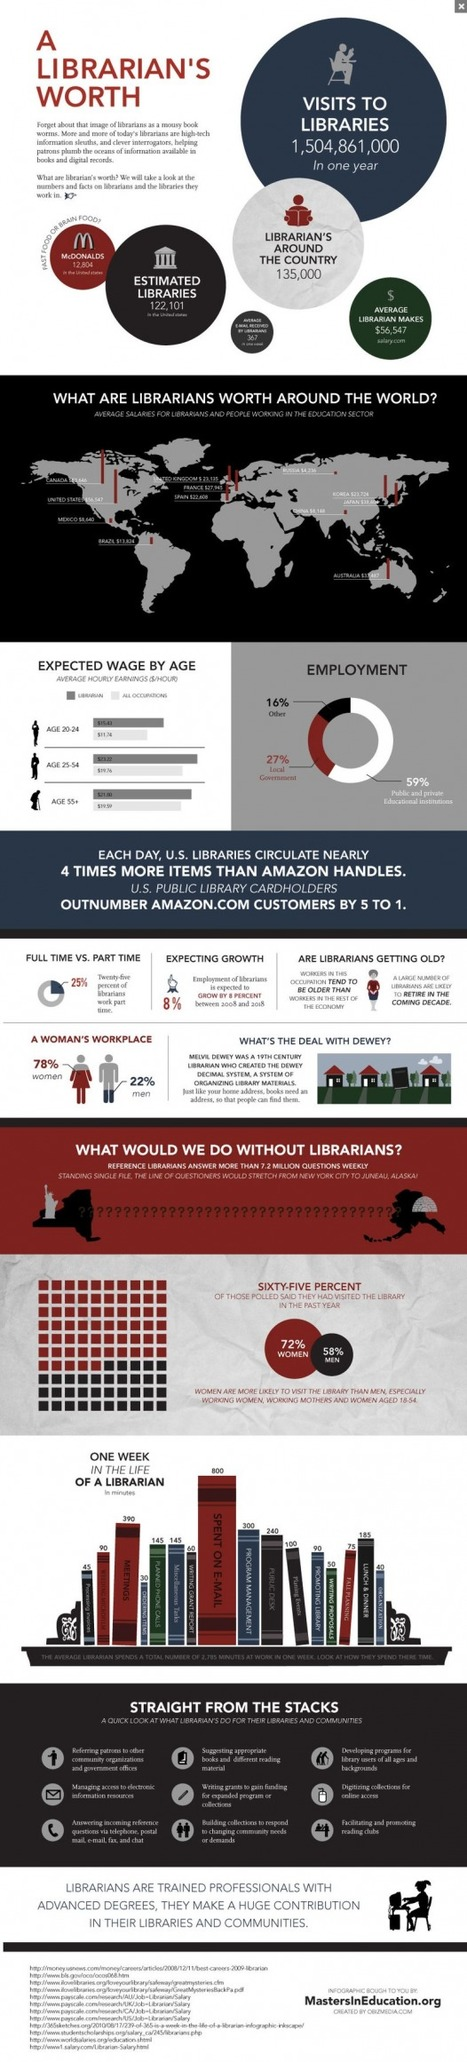 What are librarians worth around the world #Infographic | The Information Professional | Scoop.it